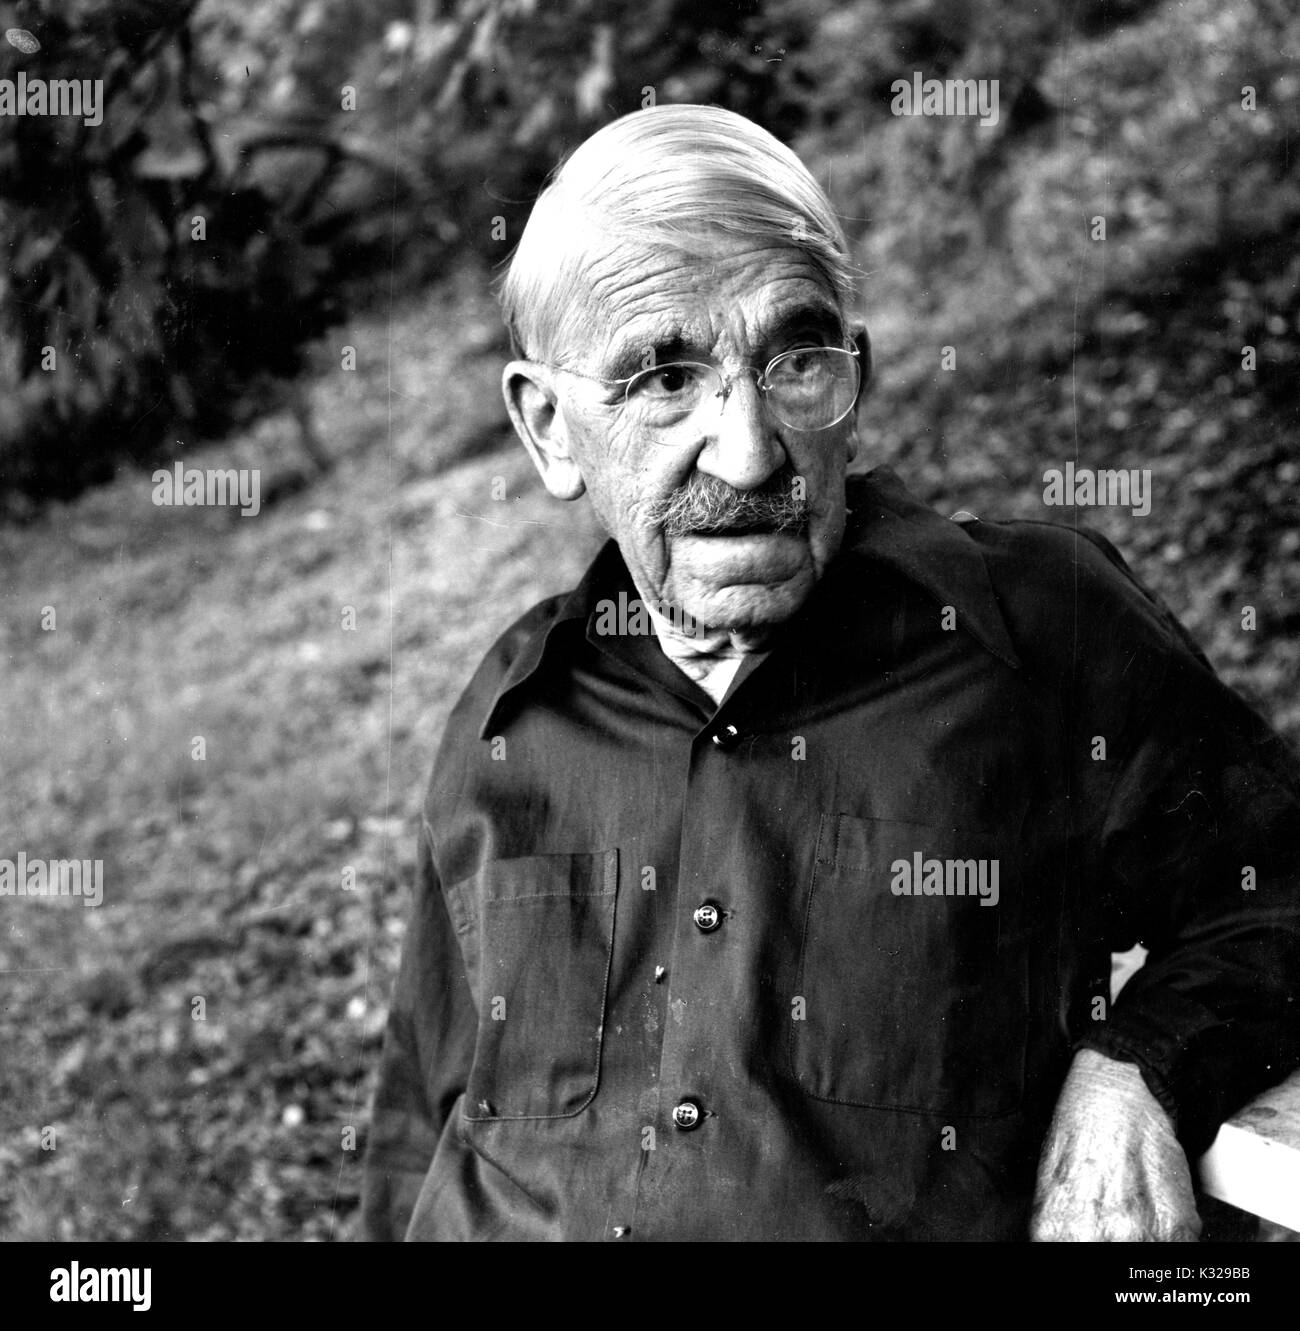 Candid portrait of American philosopher, psychologist, and educational reformer John Dewey standing in a wooded area, 1935. - Stock Image